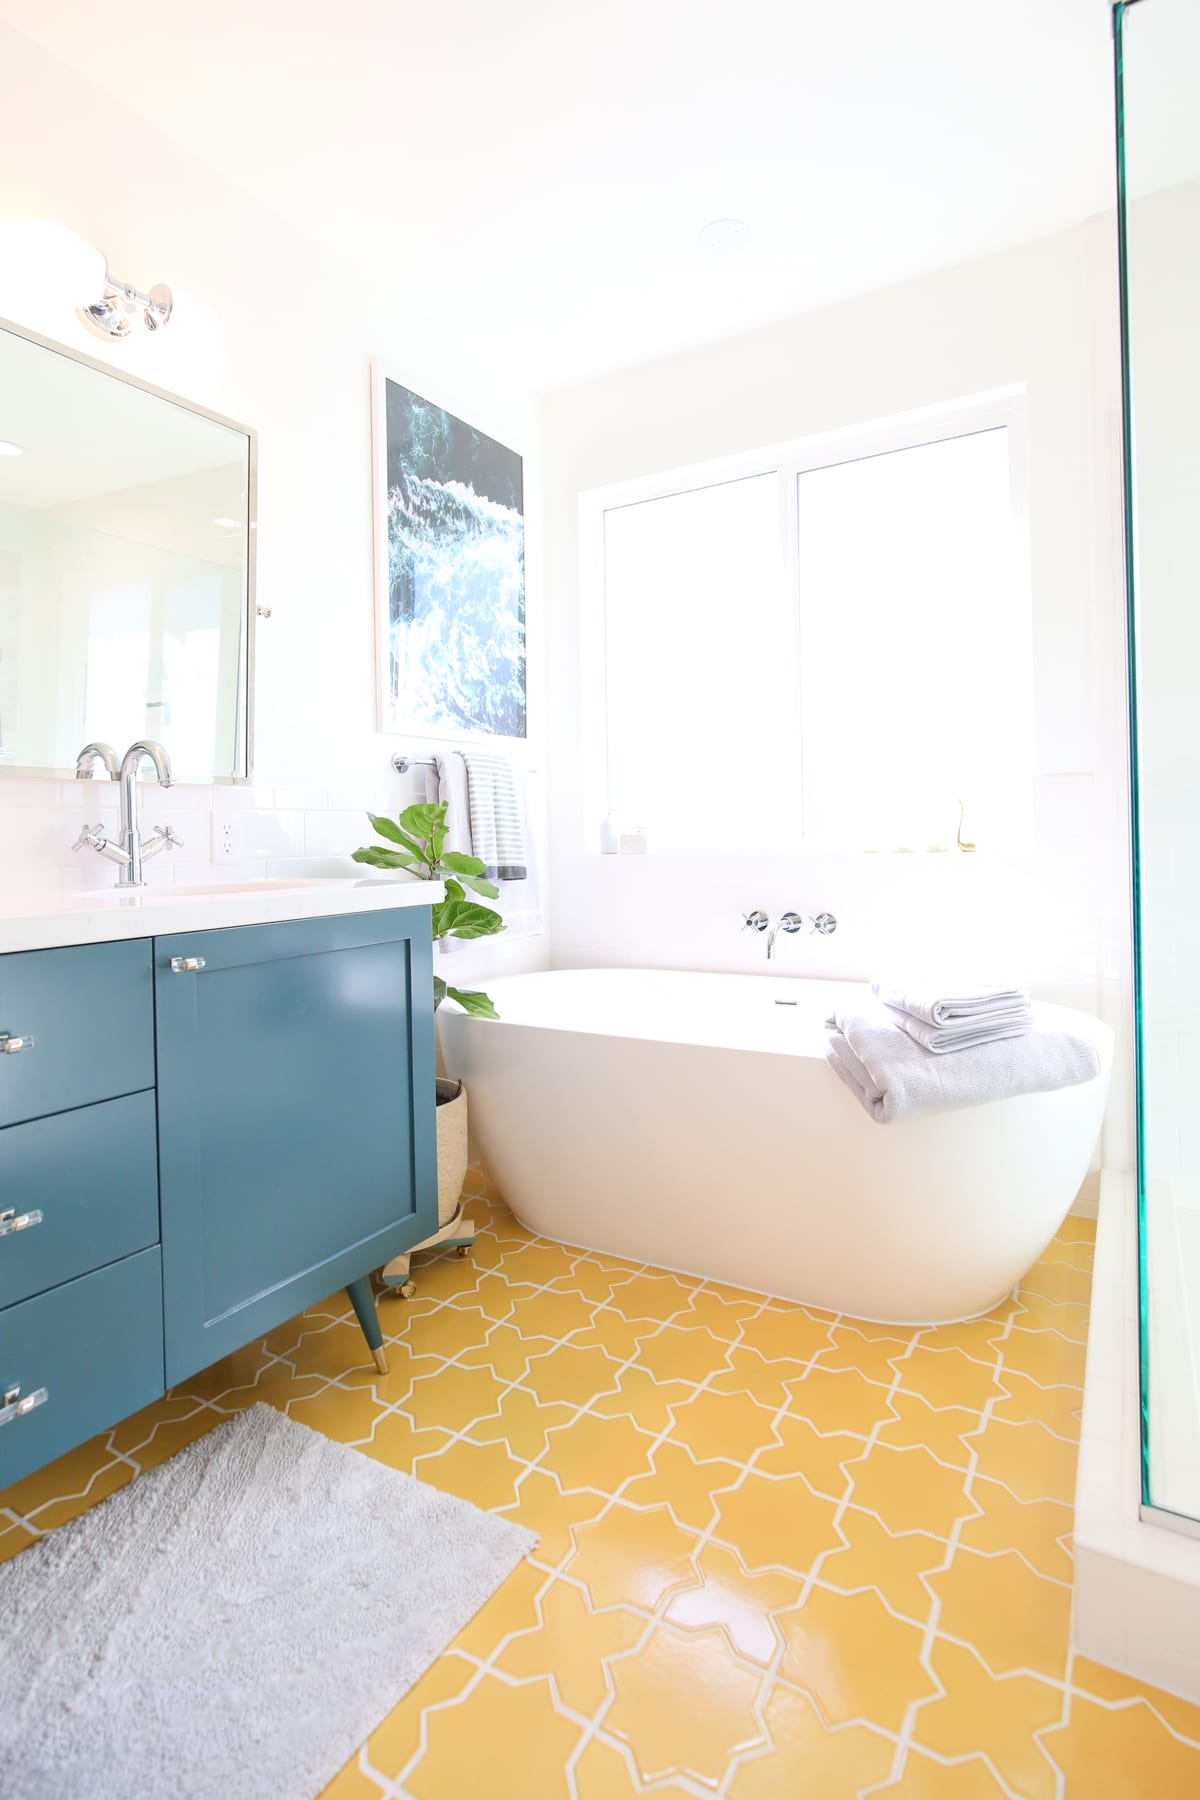 Room Reveal // New Master Bathroom | Lovely Indeed